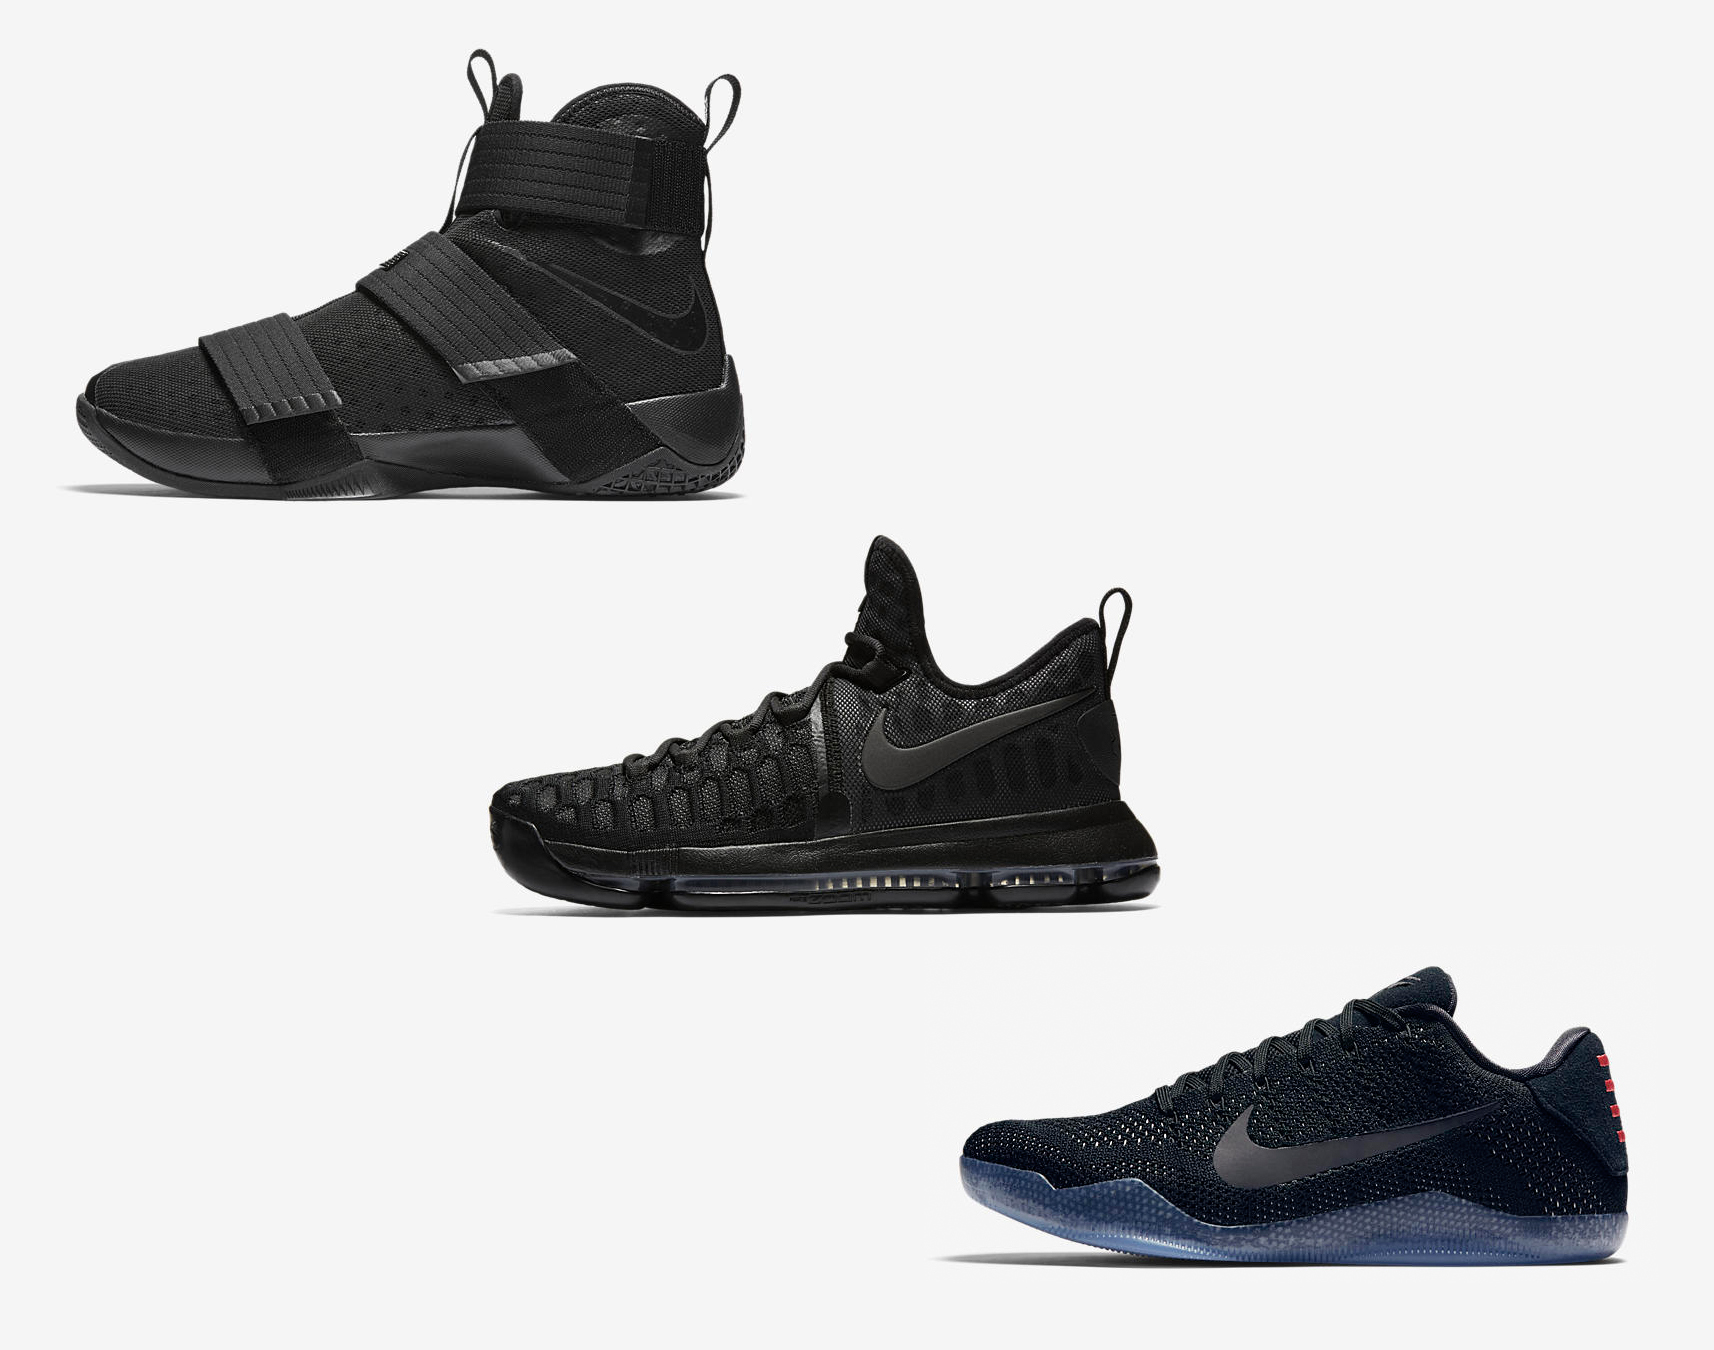 premium selection db43d c0b08 The Nike Basketball 'Black Space' Collection is Available ...